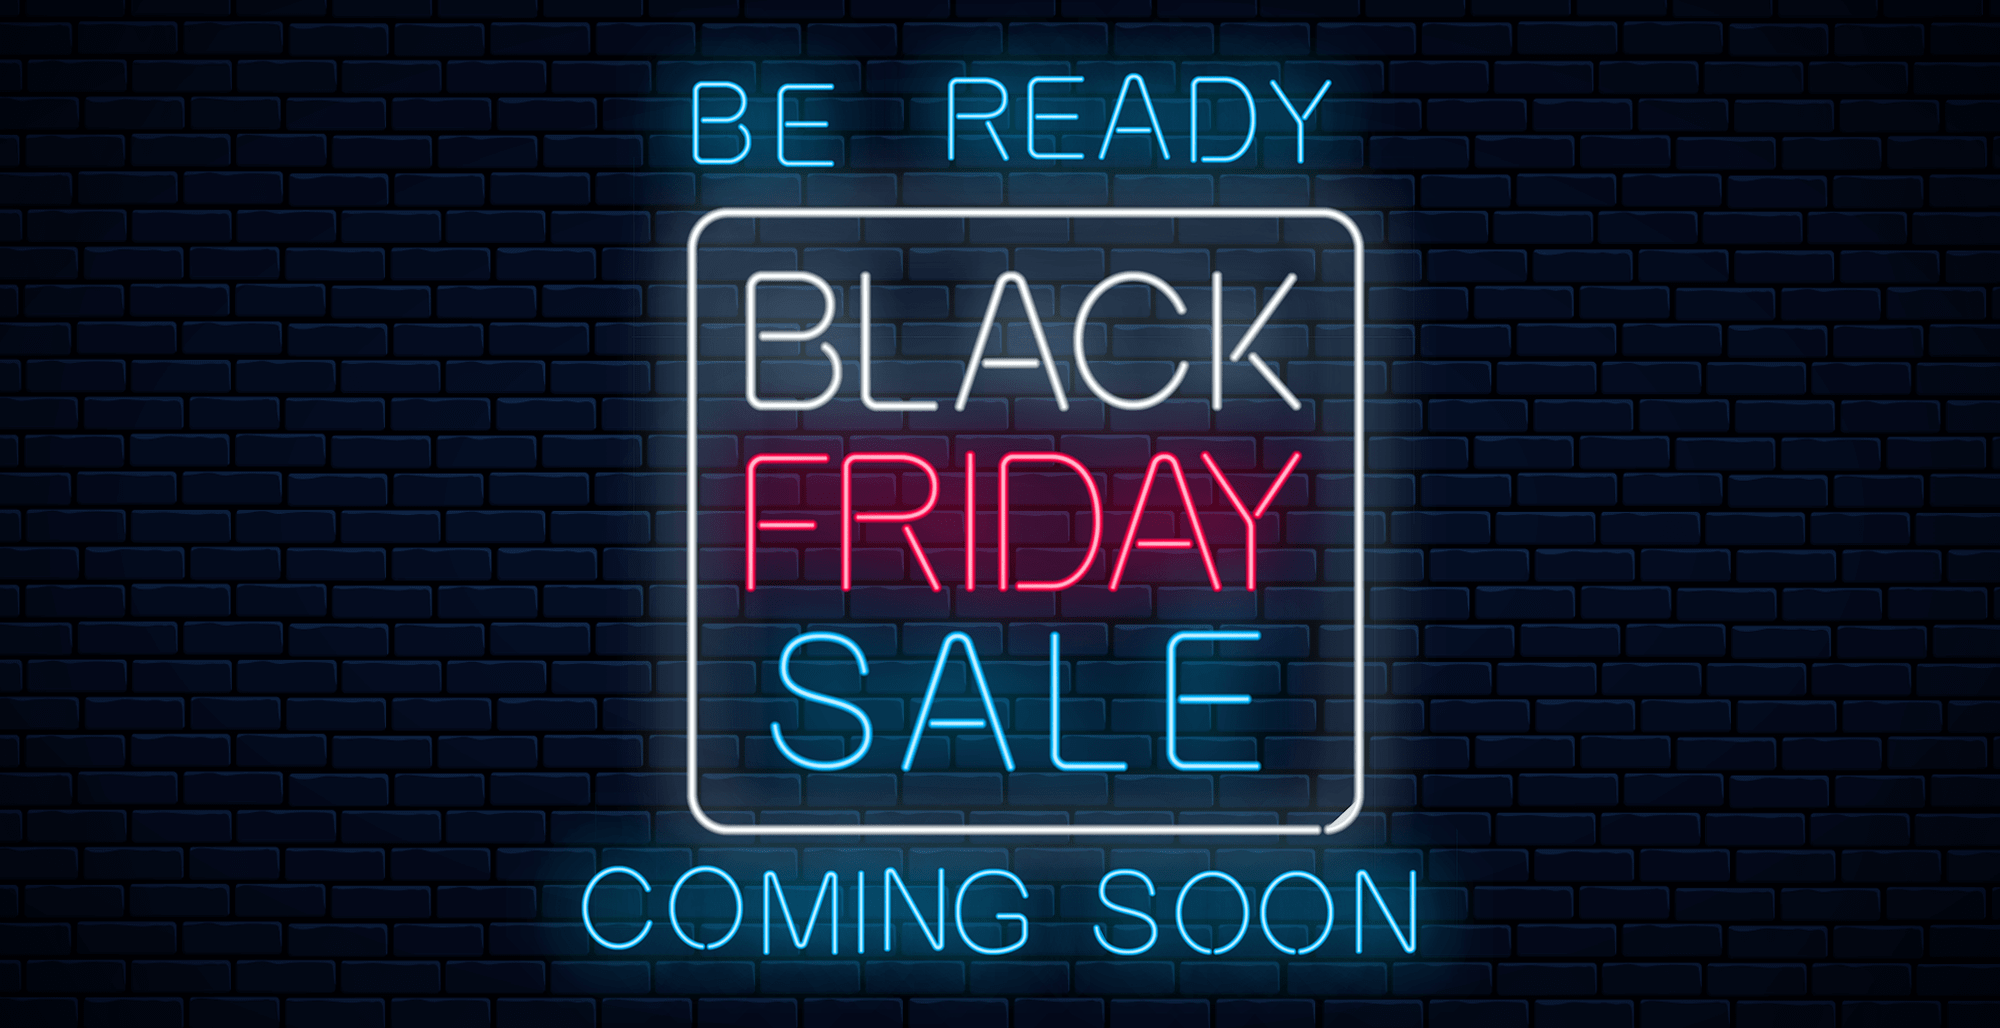 Black Friday is coming...be ready!